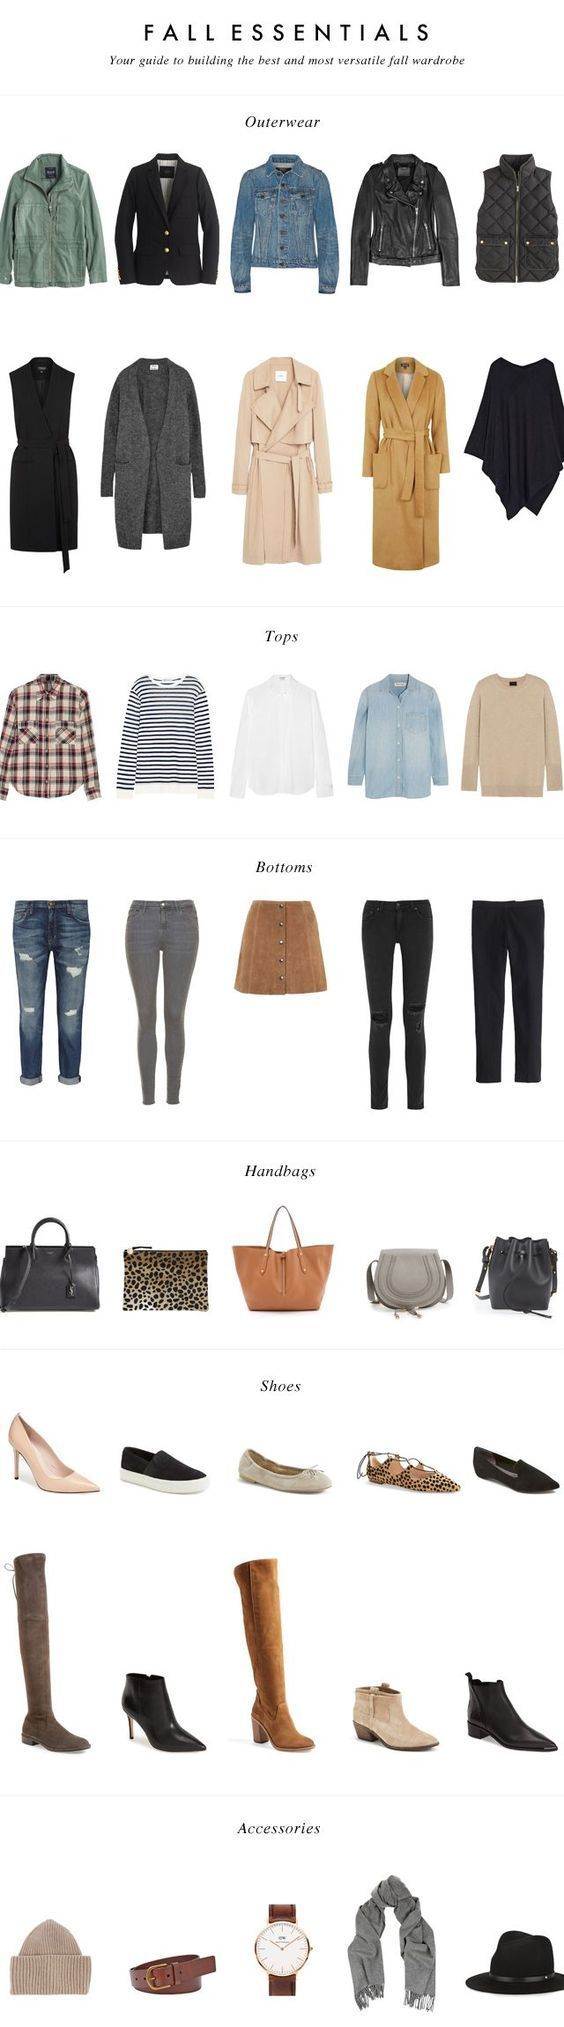 MINIMAL + CLASSIC: Fall Essentials: Your Guide to building the best and most versatile fall wardrobe